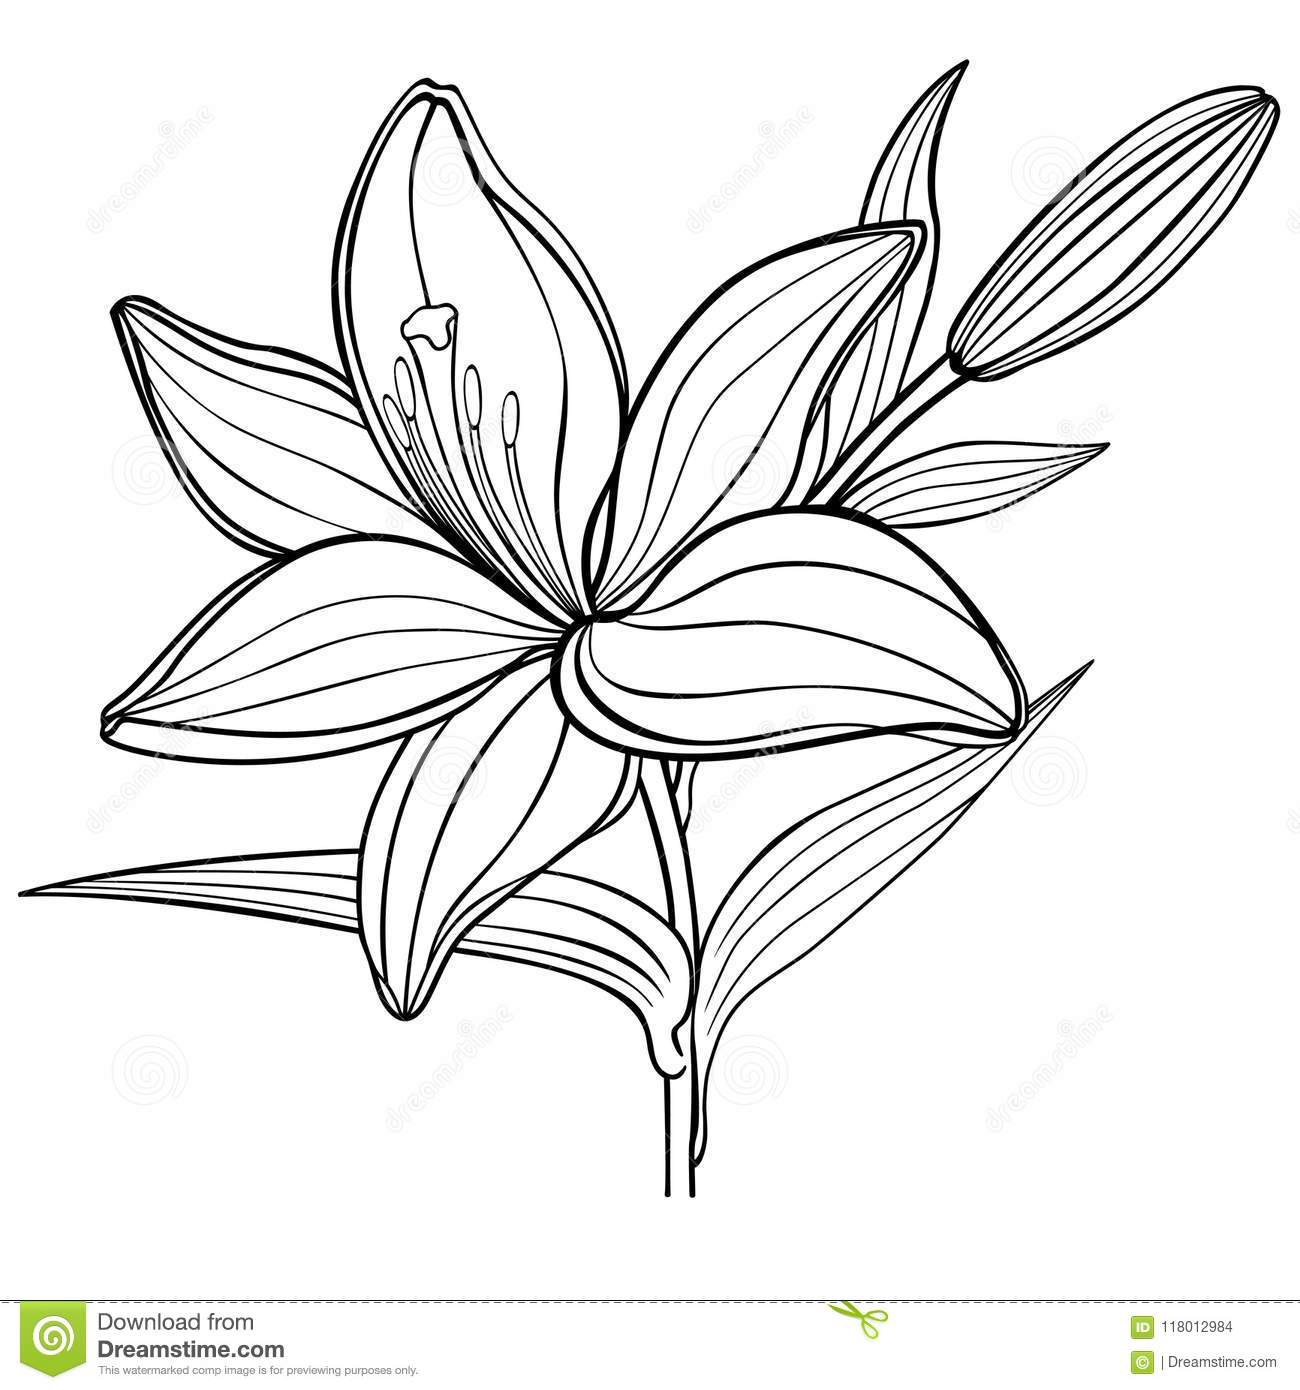 A Lily Flower With A Bud Black And White Linear Drawing Coloring